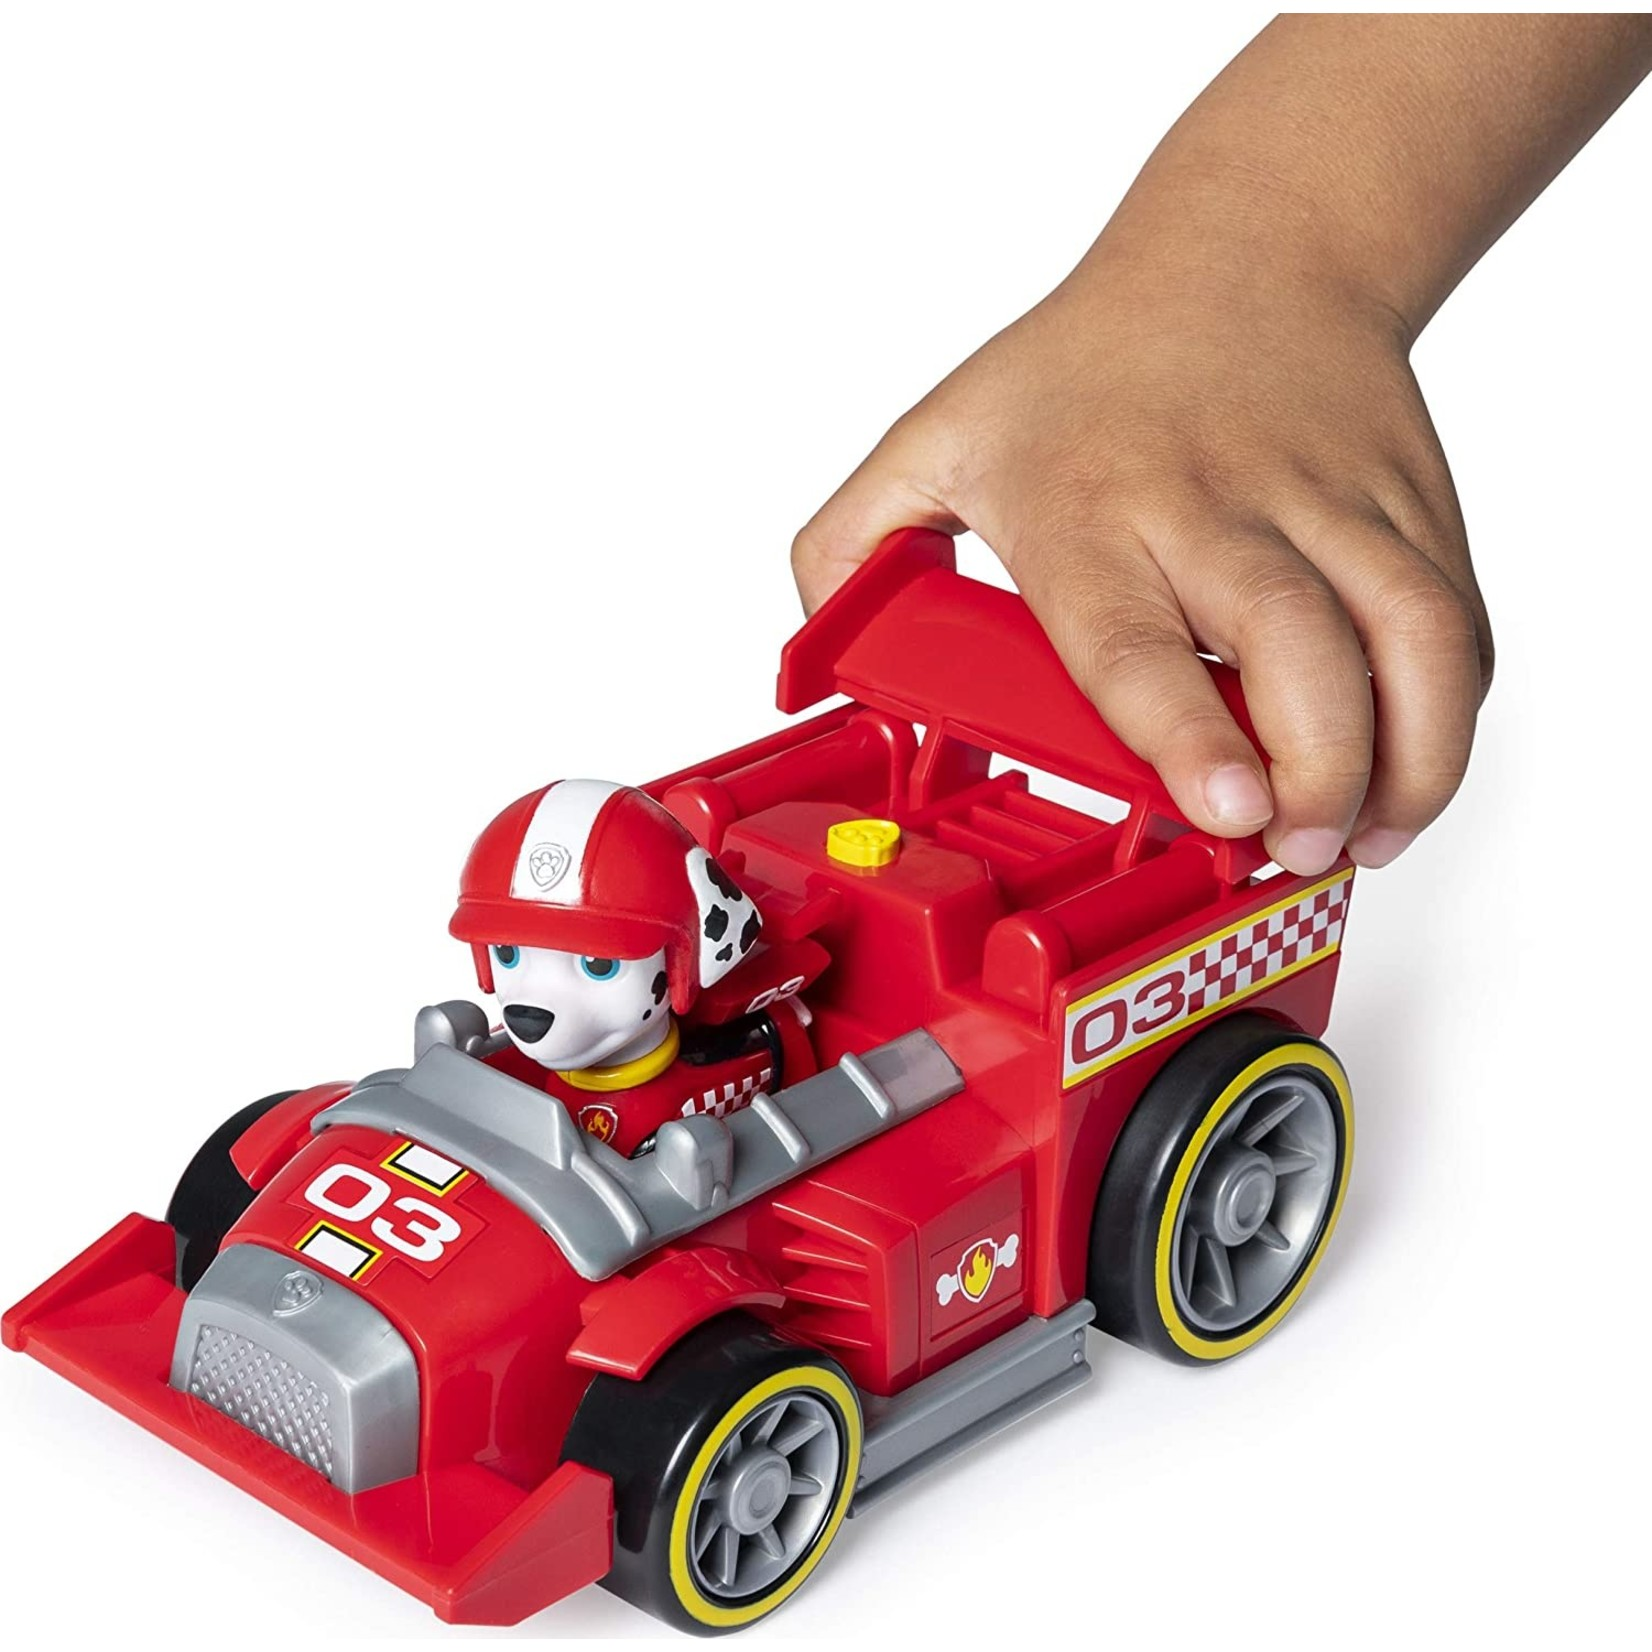 Spin Master Paw patrol Race Rescue Marshall